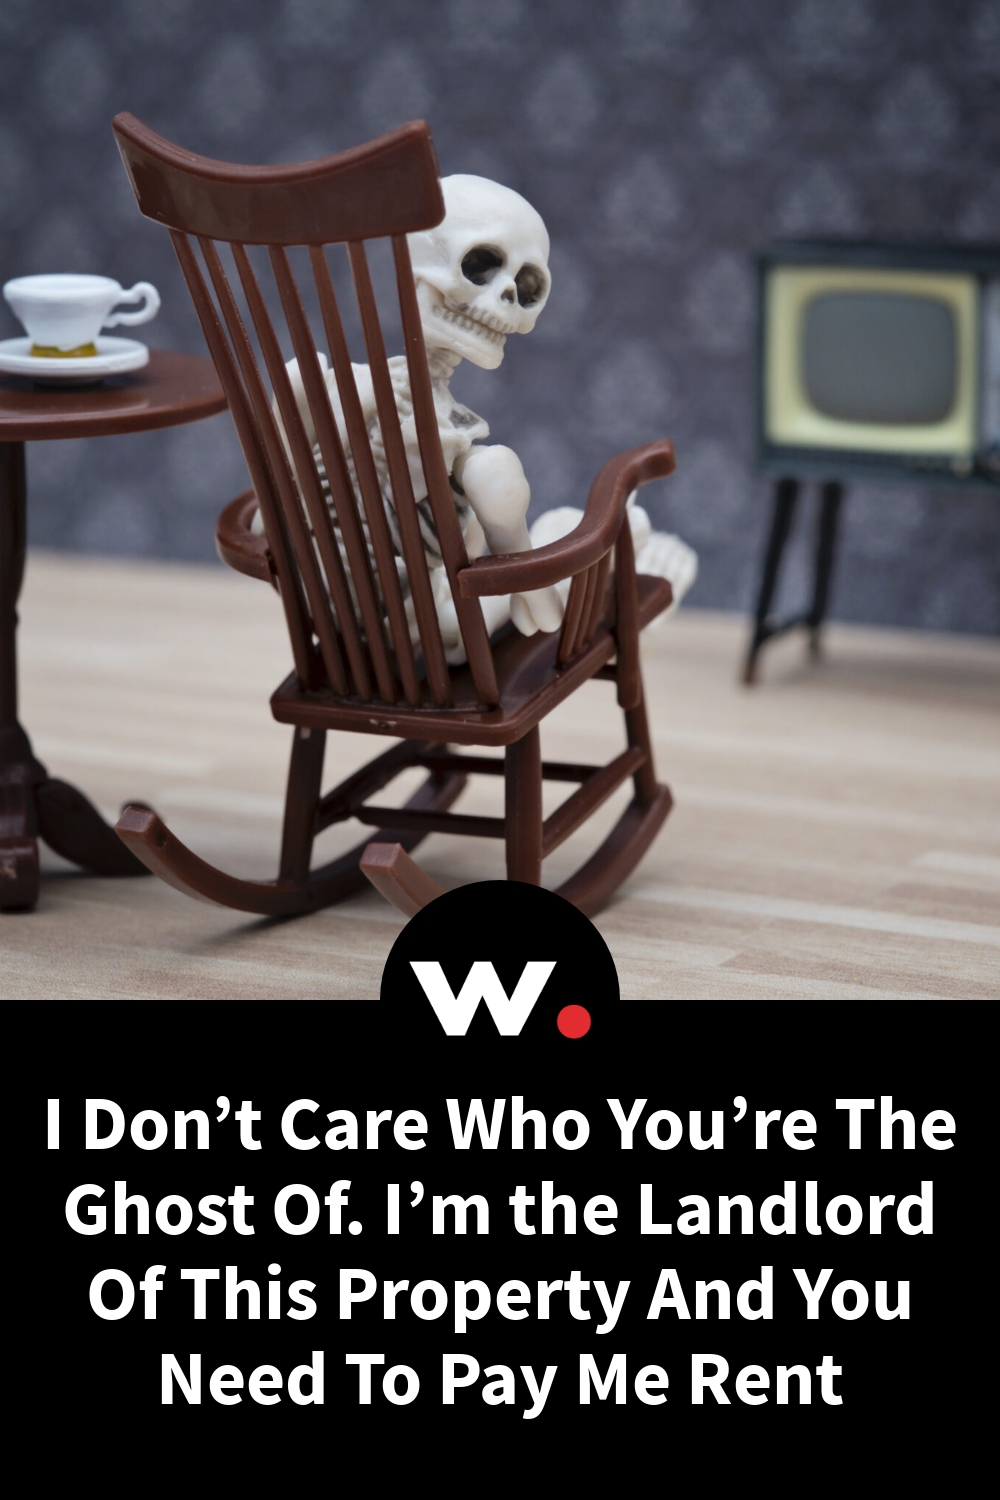 I Don't Care Who You're The Ghost Of. I'm the Landlord Of This Property And You Need To Pay Me Rent